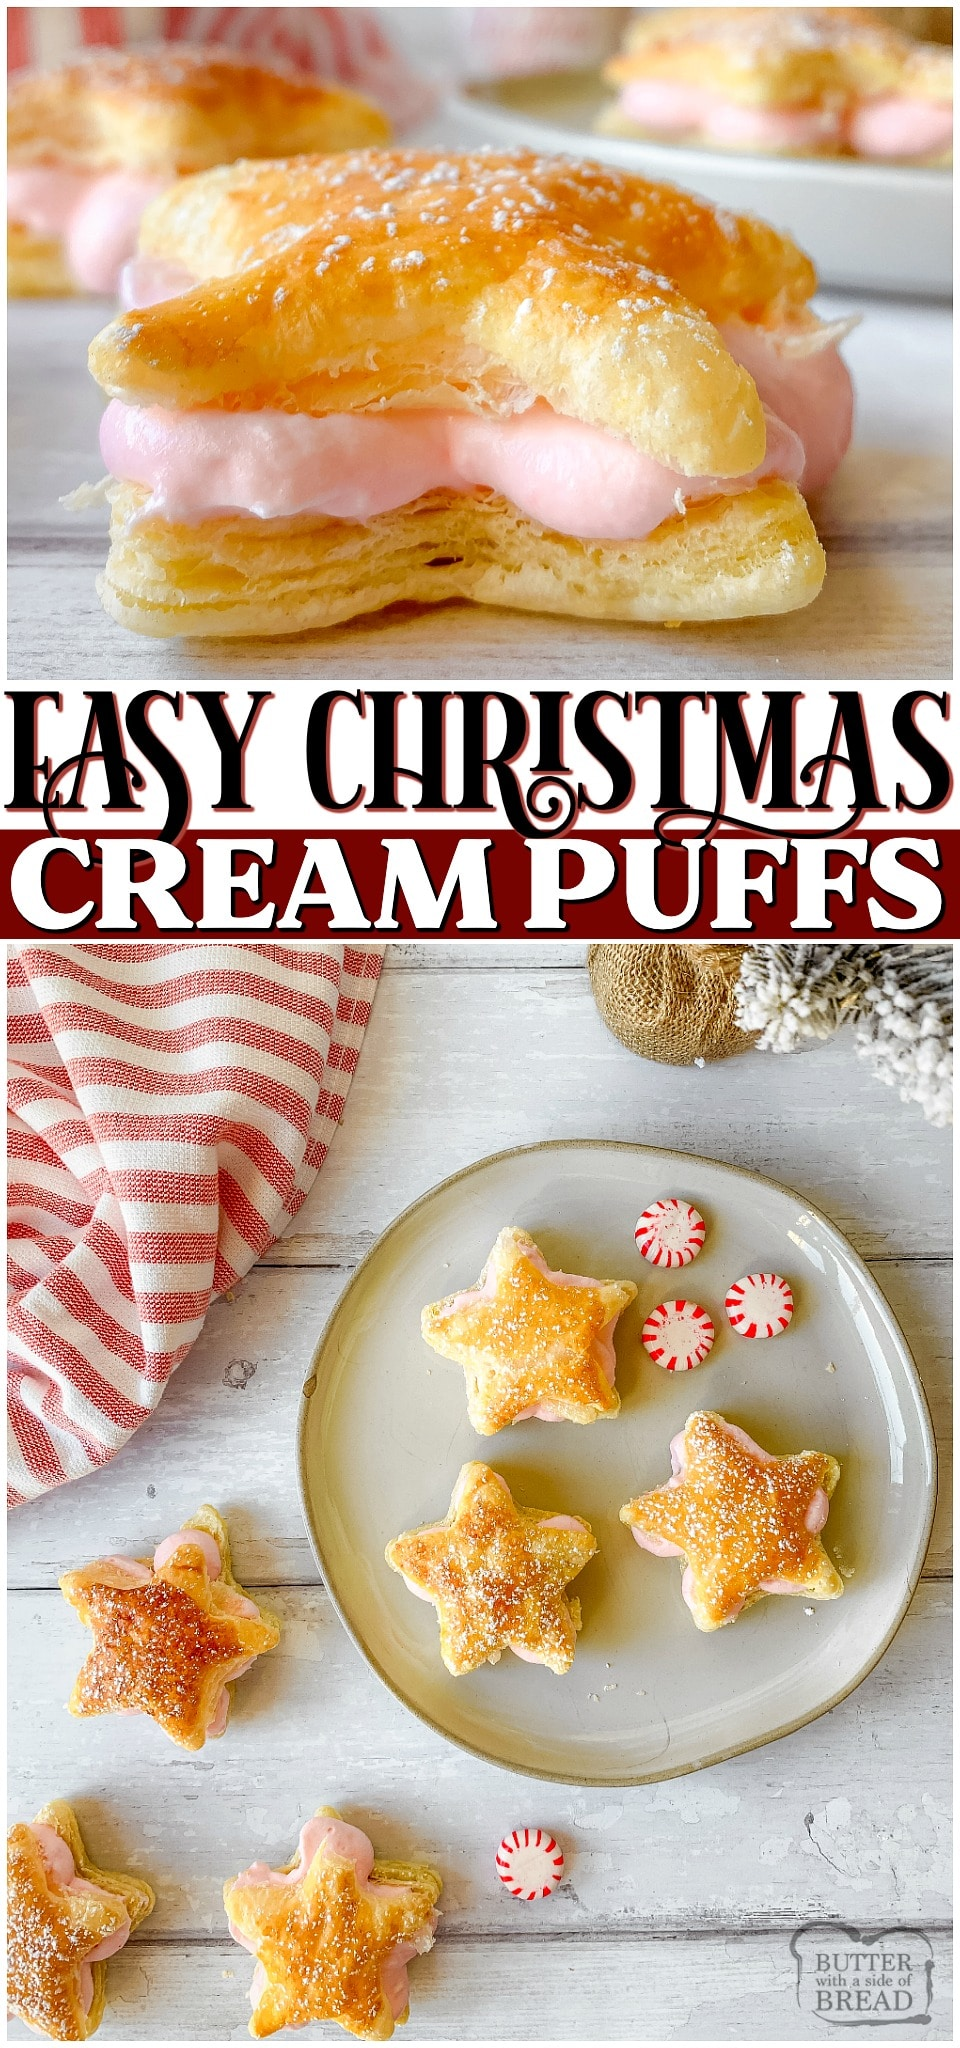 Peppermint Cream Puff Stars are a simple, 4-ingredient cream puffs perfect for Christmas! With cute peppermint filled puff pastry stars, you can have a festive dessert that's so easy to make!